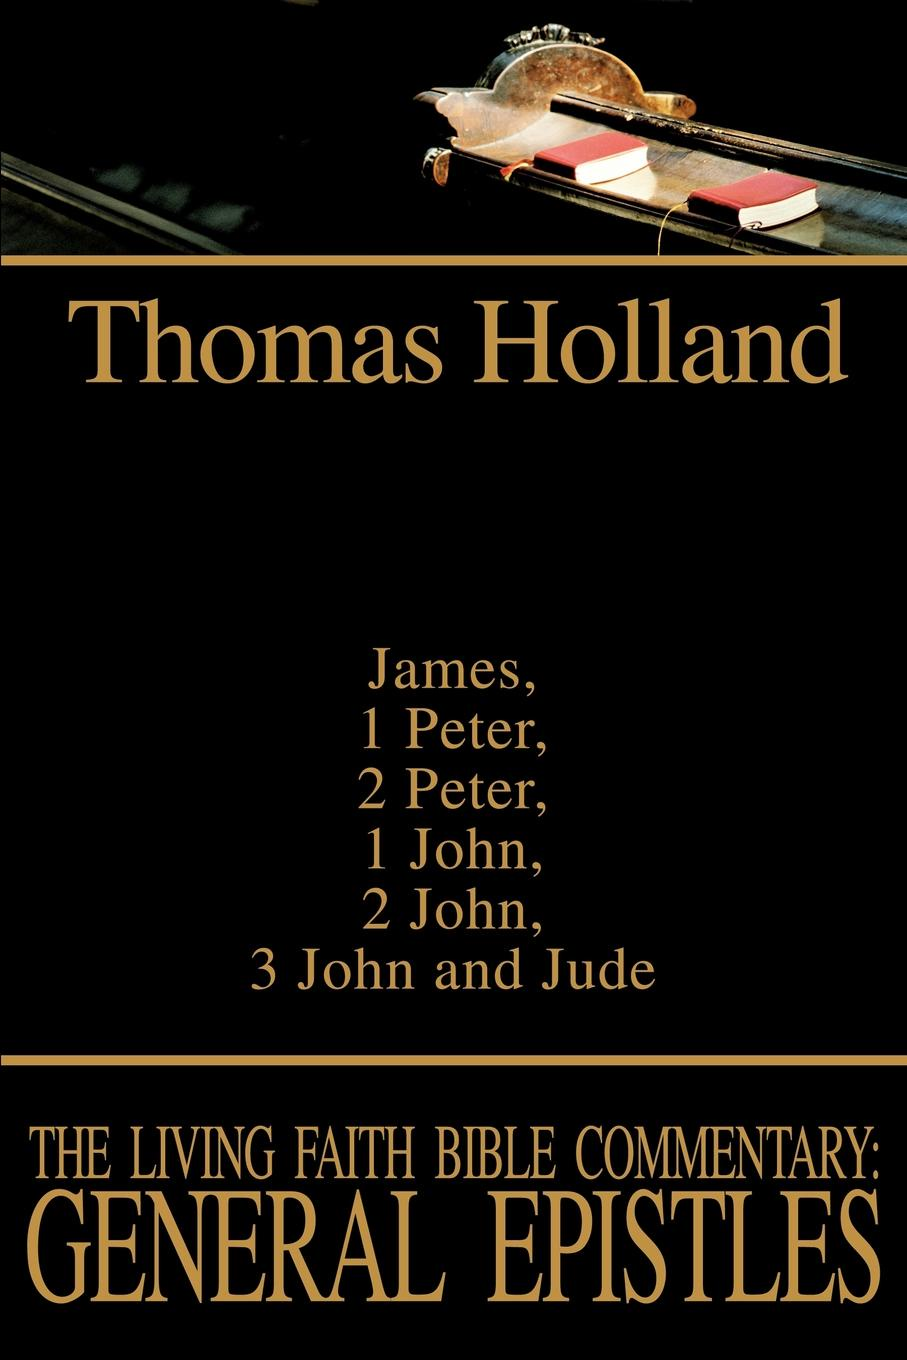 Thomas Holland The Living Faith Bible Commentary. General Epistles:James, 1 Peter, 2 John, 3 John and Jude